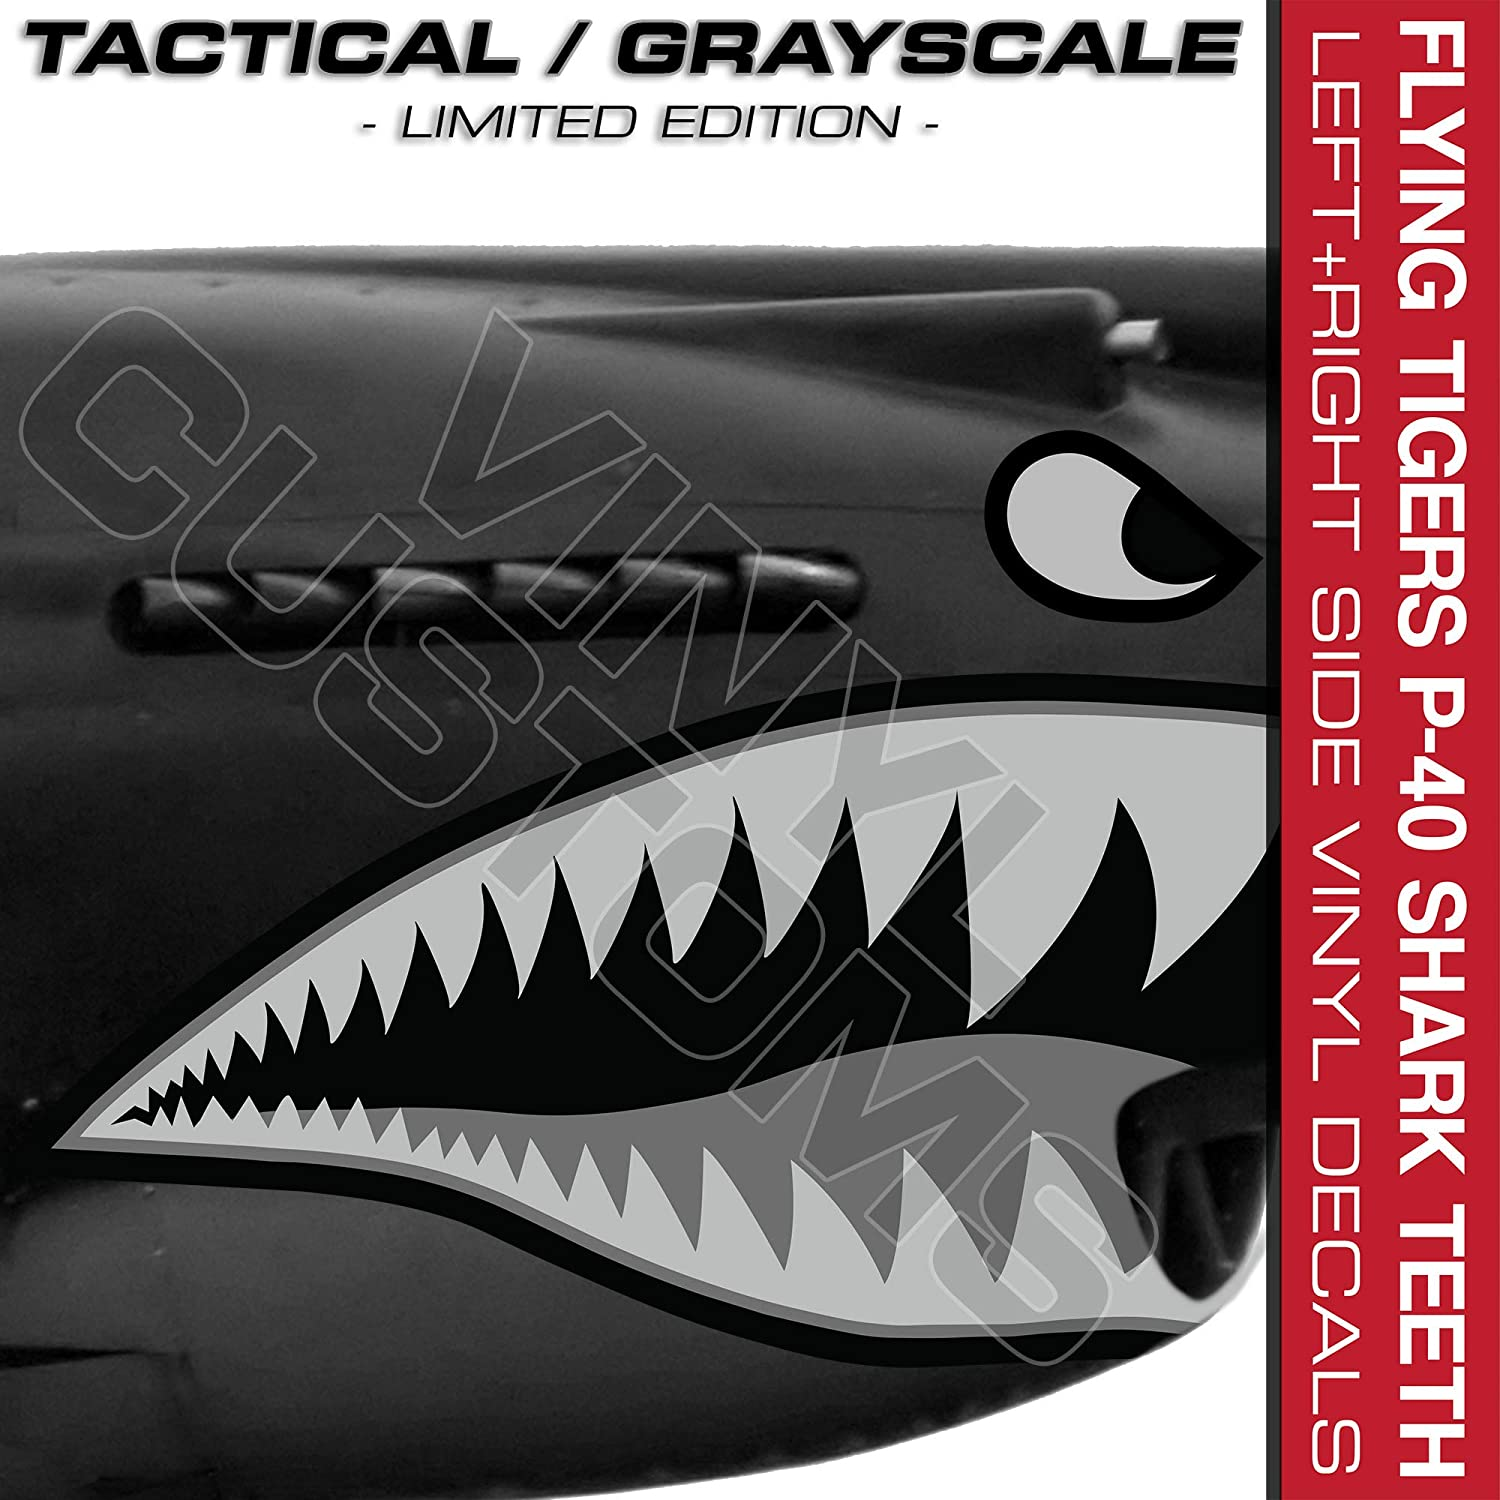 Flying Tigers Shark Mouth Teeth Die-Cut Vinyl Decals V3 Tactical